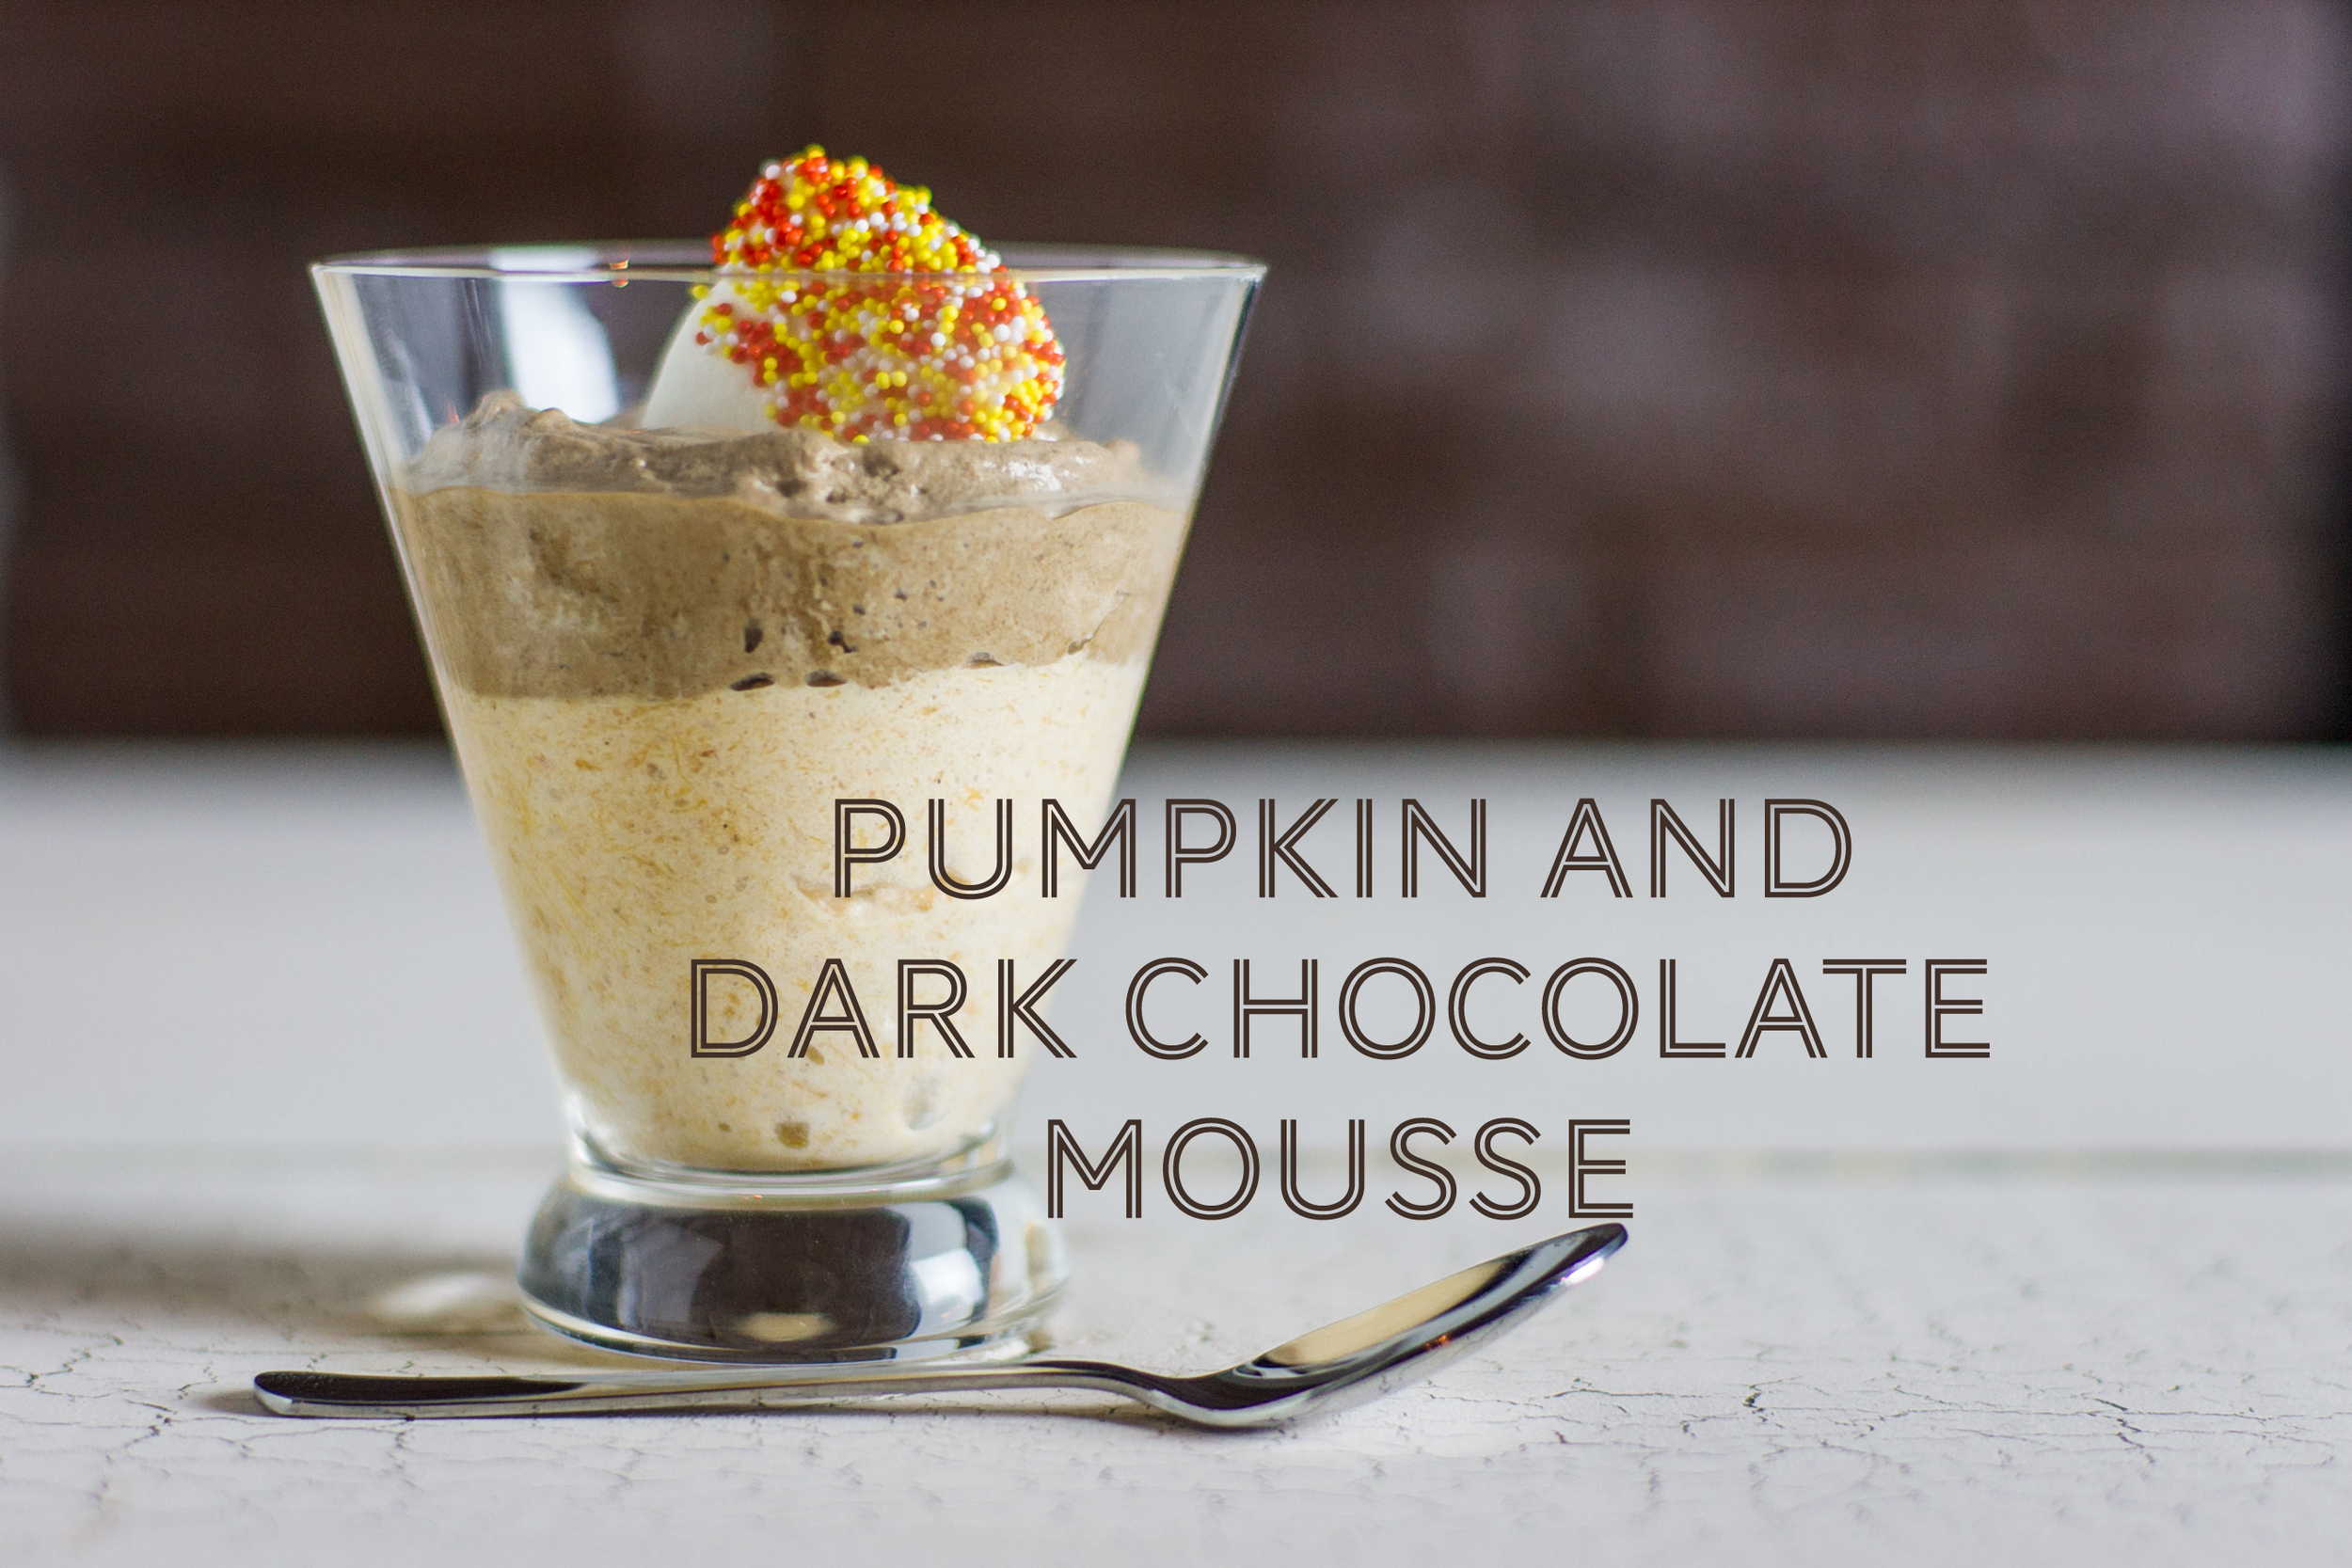 Pumpkin and Dark Chocolate Mousse by Sam Henderson of Today's Nest